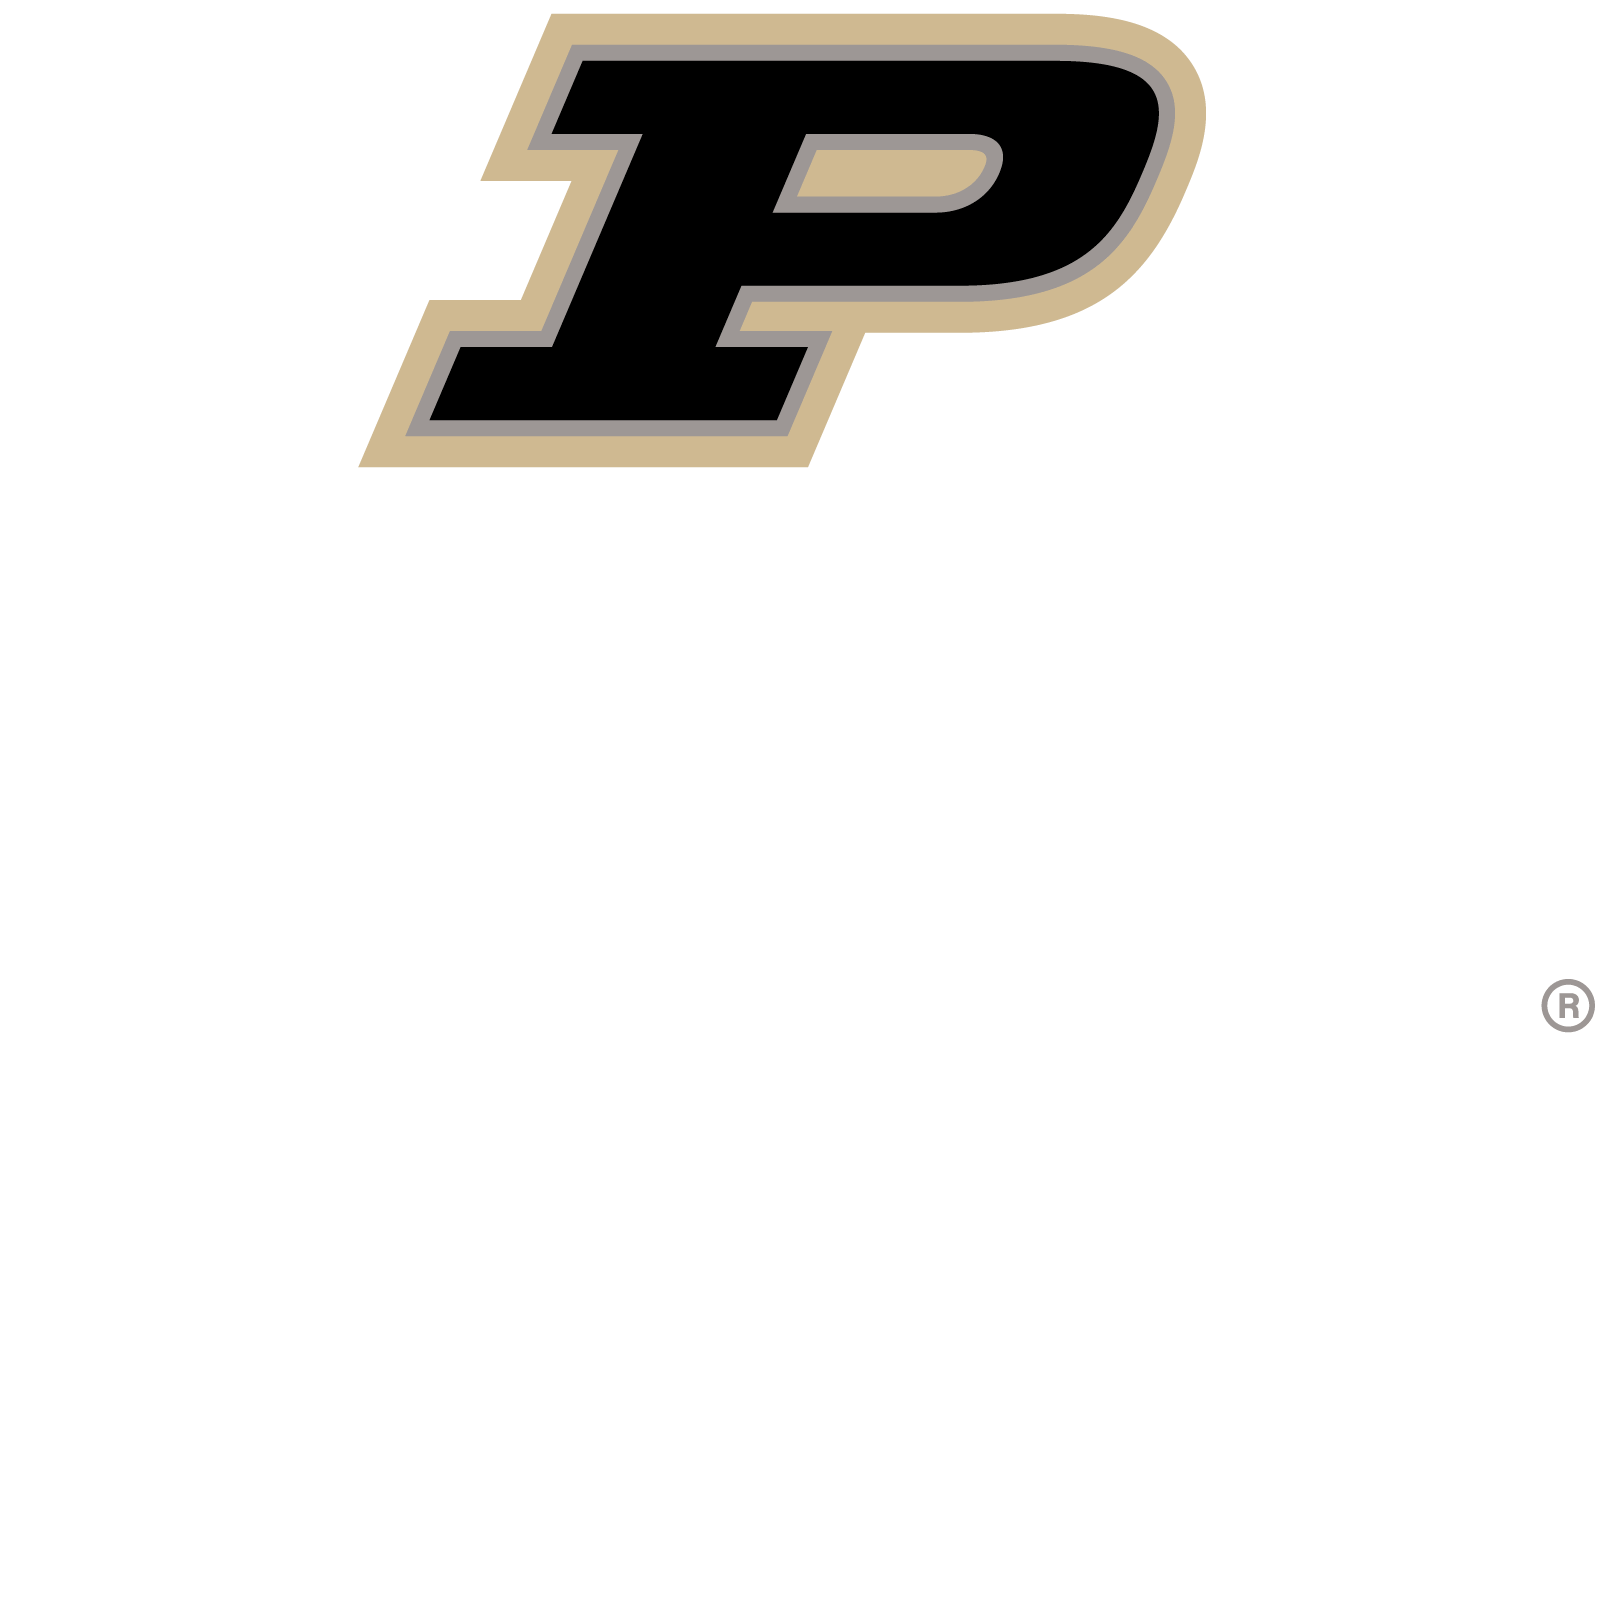 Purdue University College of Science